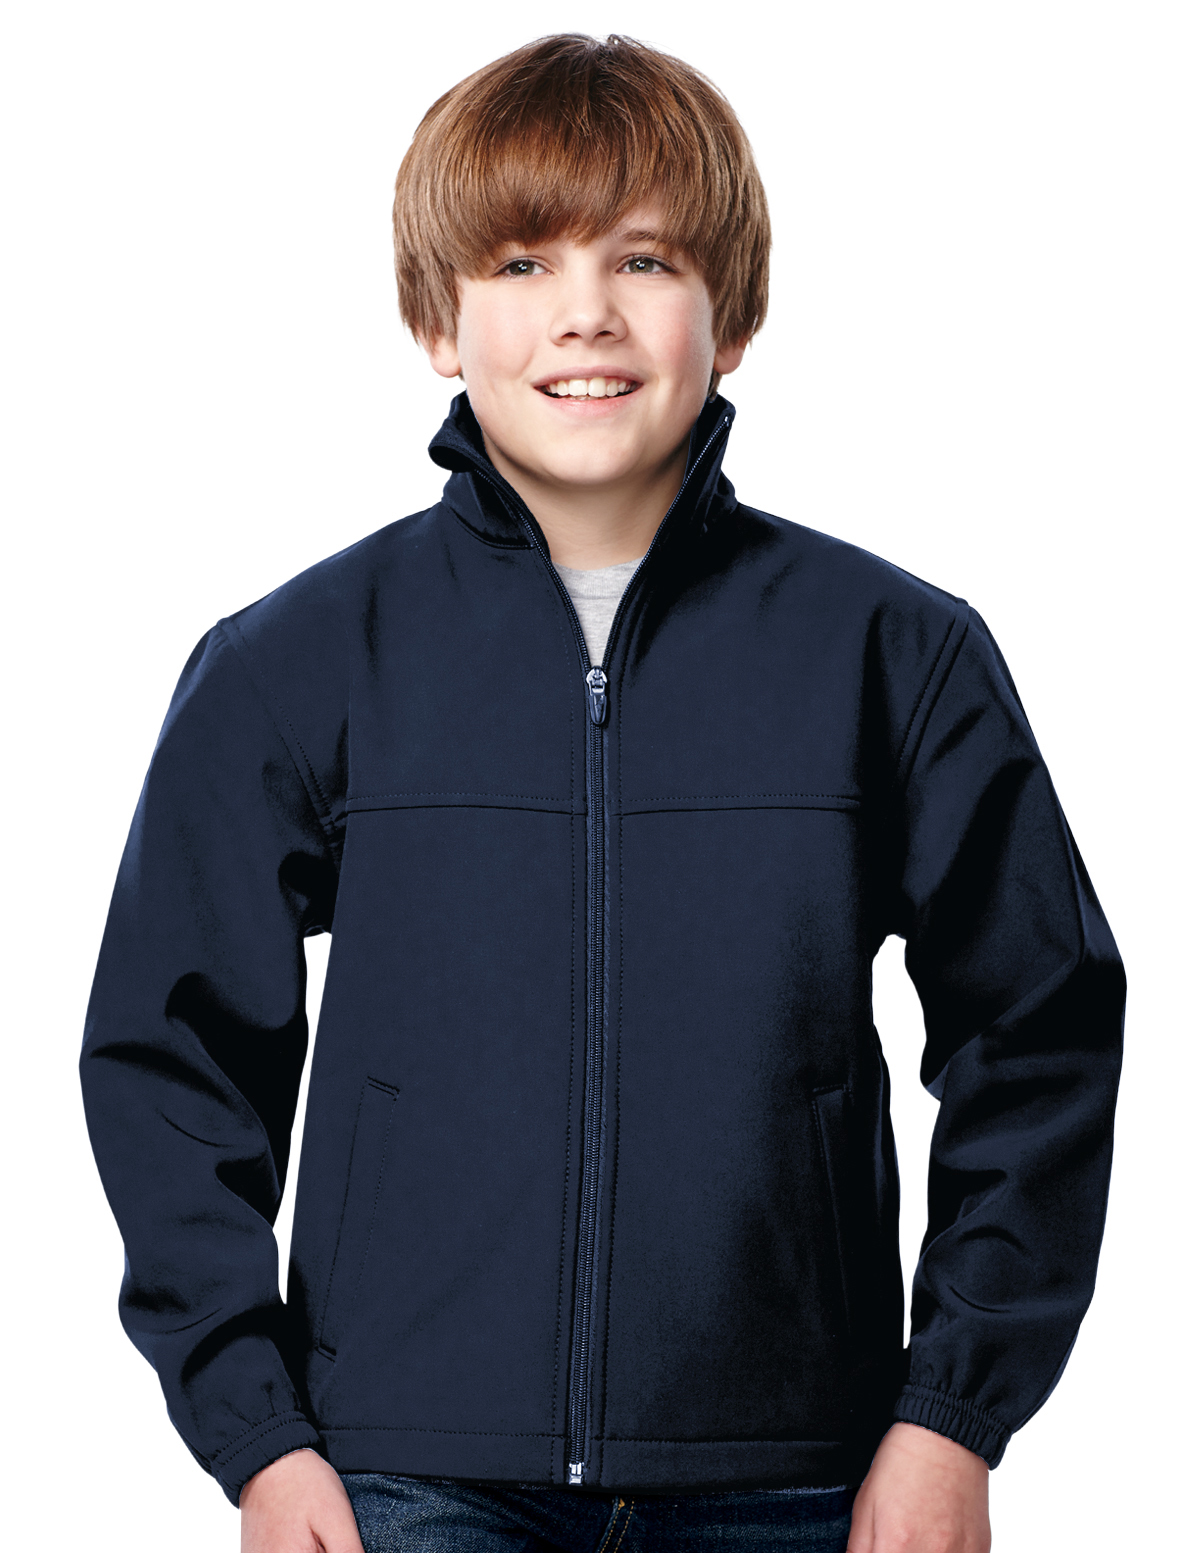 Tri-Mountain Youth Jacket JY6380 Youth Quest